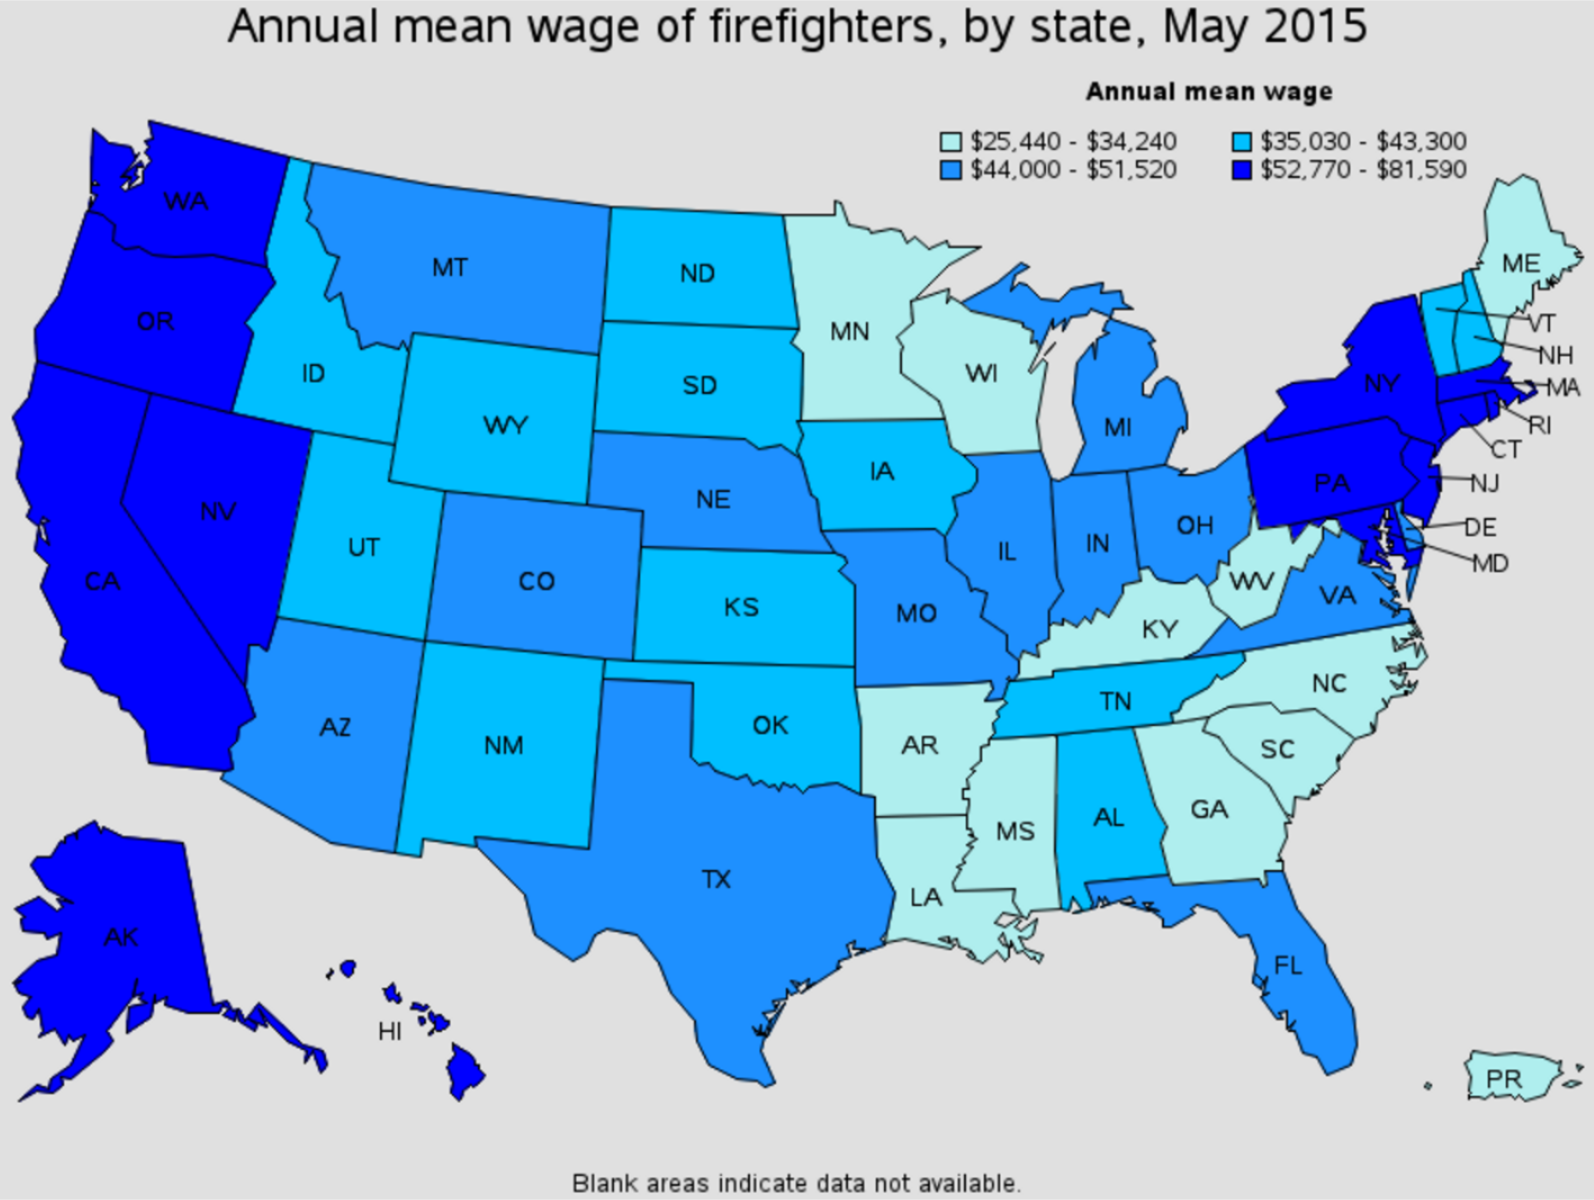 firefighter average salary by state Atlanta Georgia